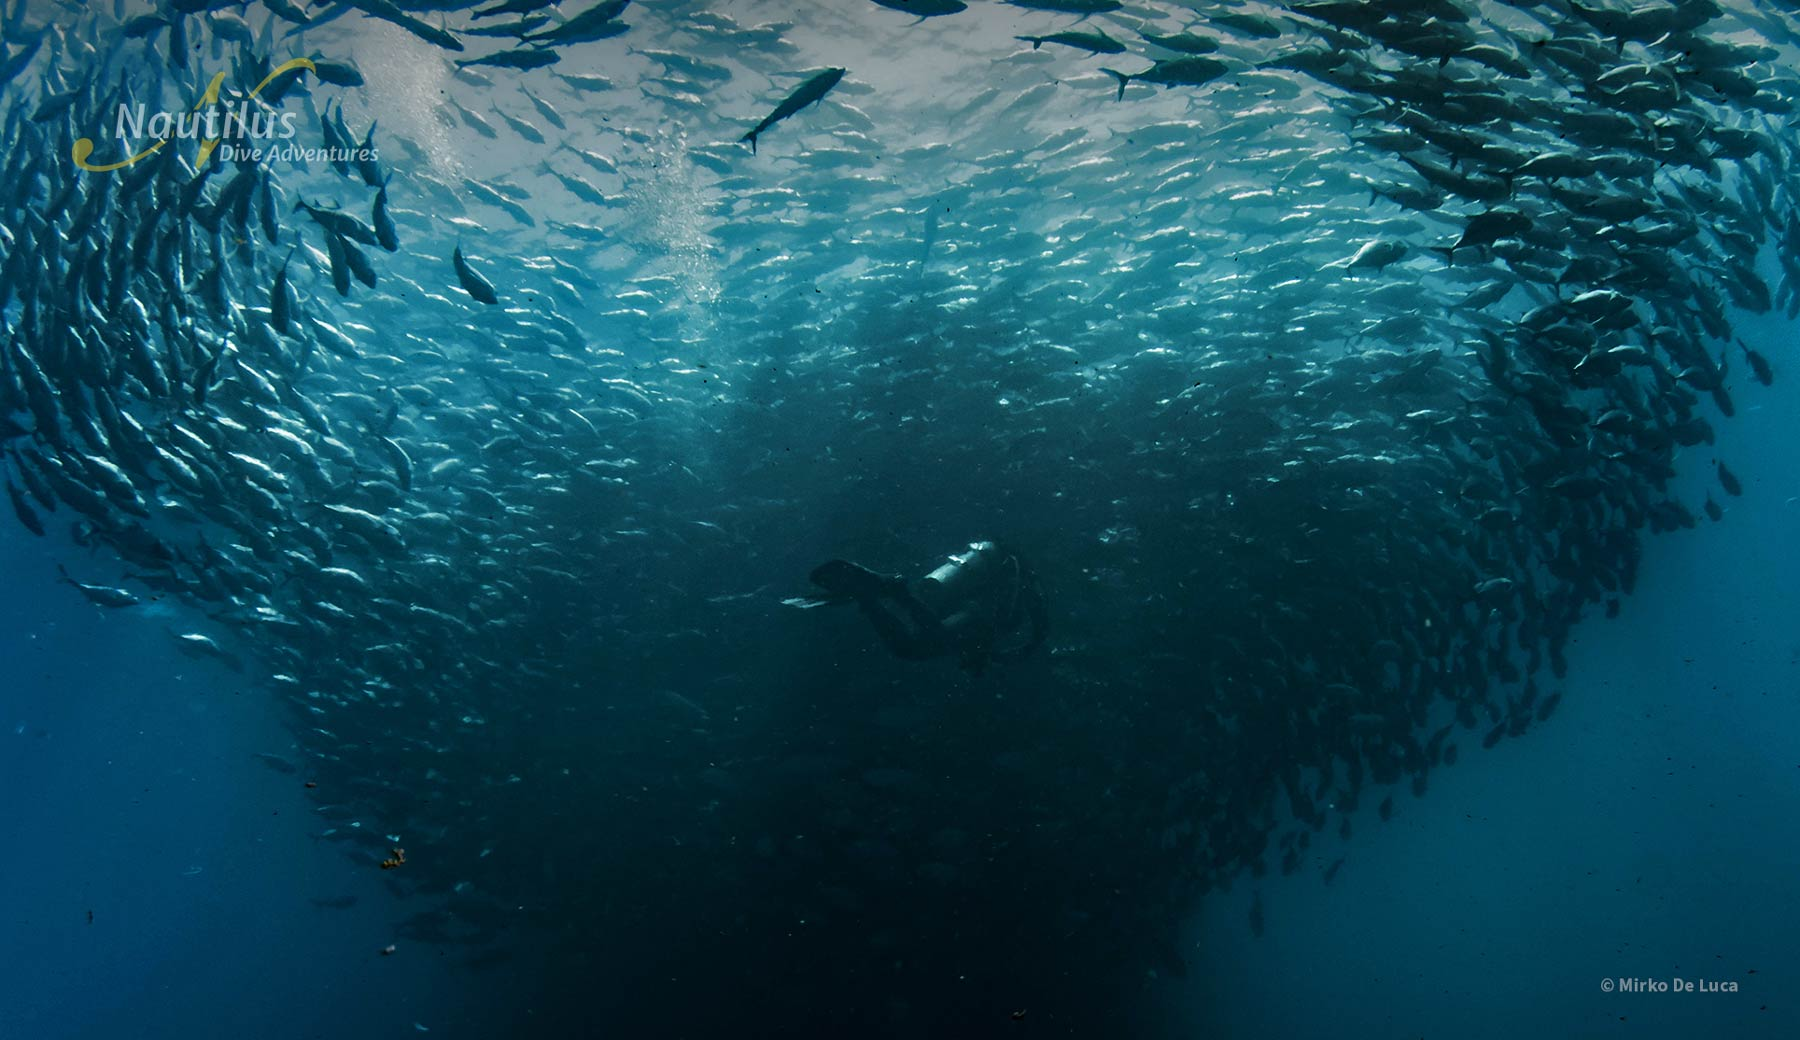 Being caught in the middle of a school of fish is amazing